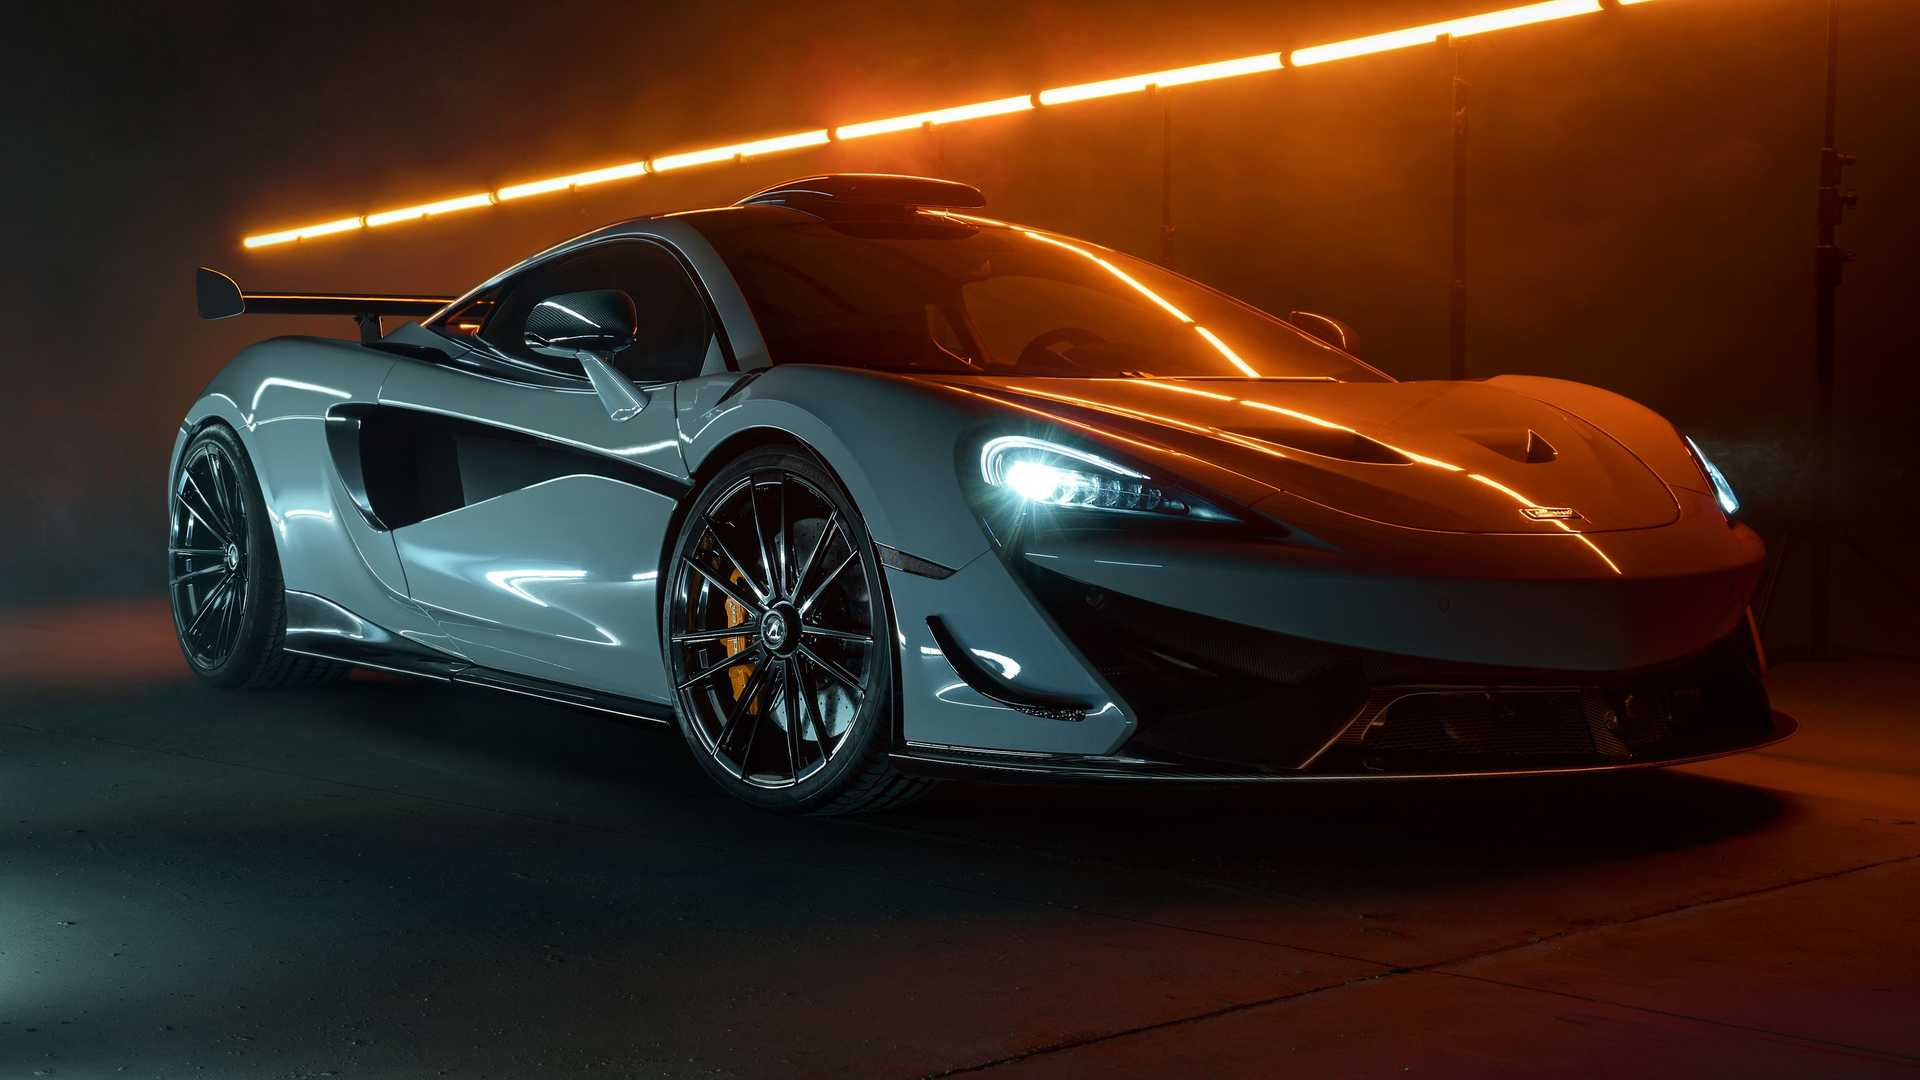 McLaren will only ever build 225 units of its 620R supercar priced from $300,000, but if you feel that's still not exclusive enough for you, Novitec has a solution.